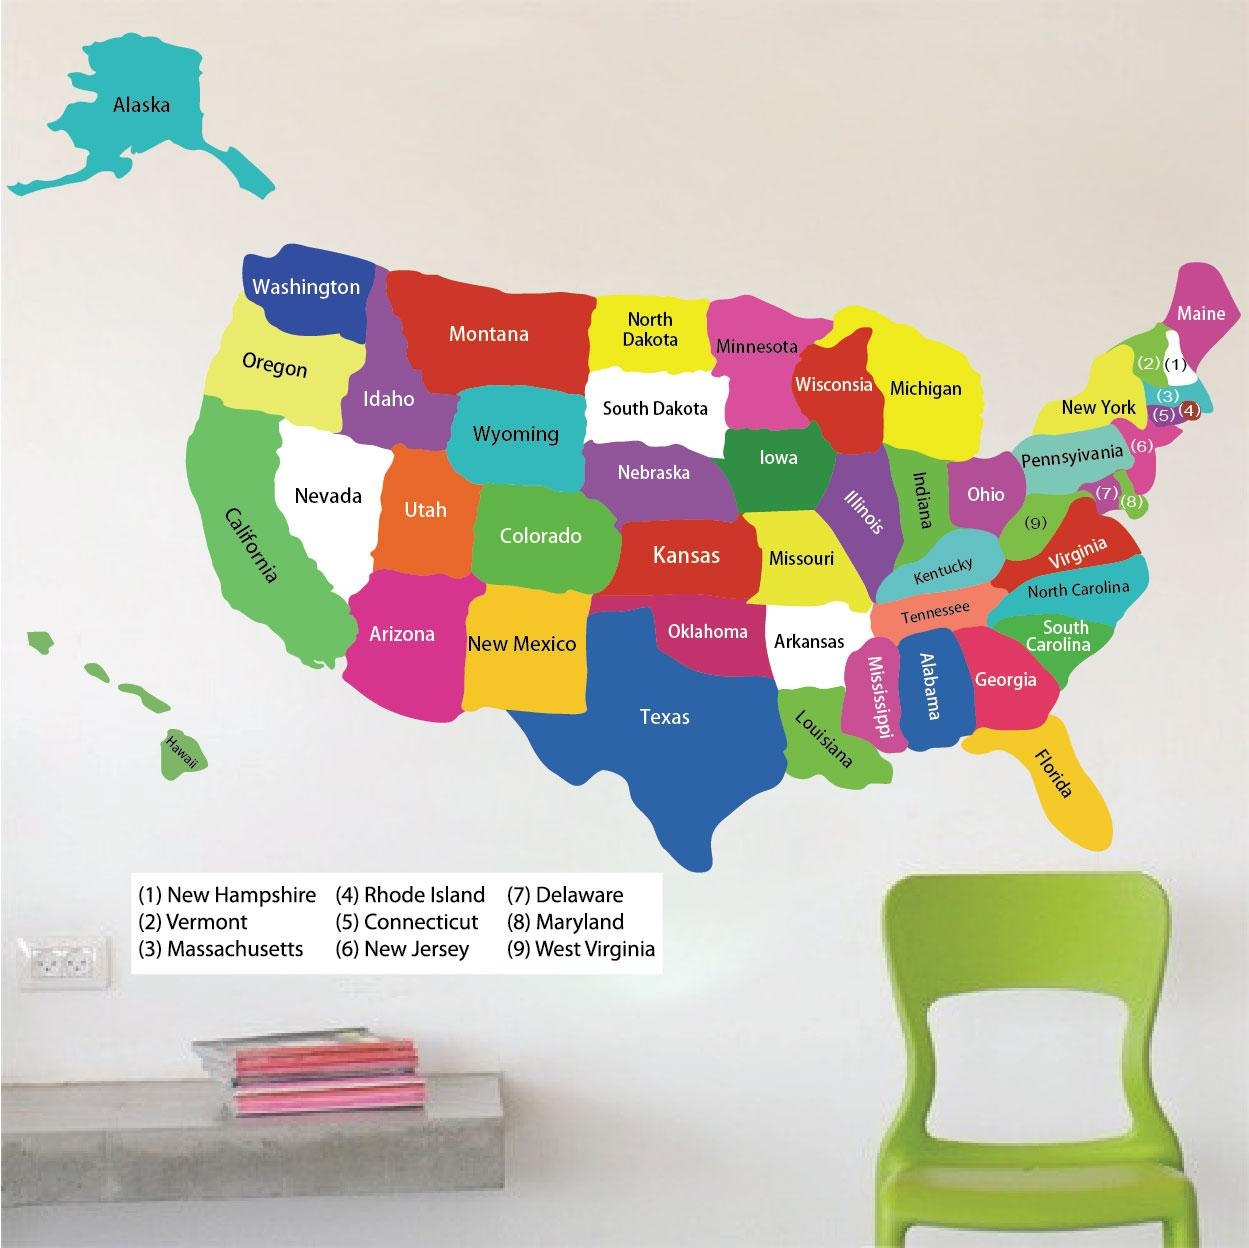 United States Map Wall Decal – Educational Wall Decal Murals Regarding United States Map Wall Art (View 8 of 21)